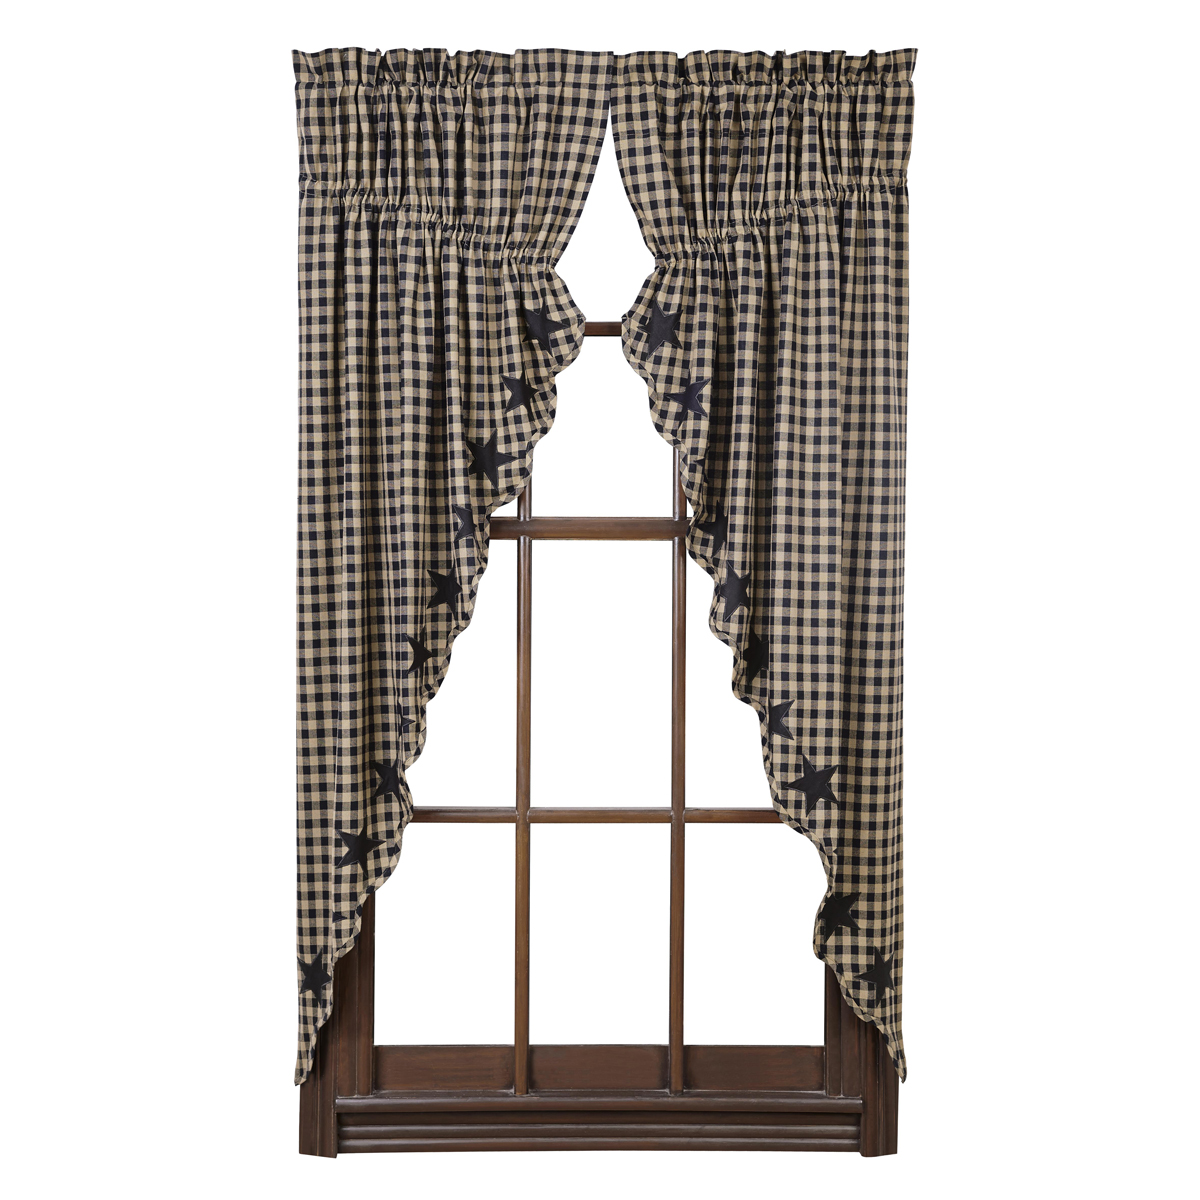 BLACK STAR Scalloped Praire Curtains - Set of 2 -63x36x18- Black/Tan -VHC Brands